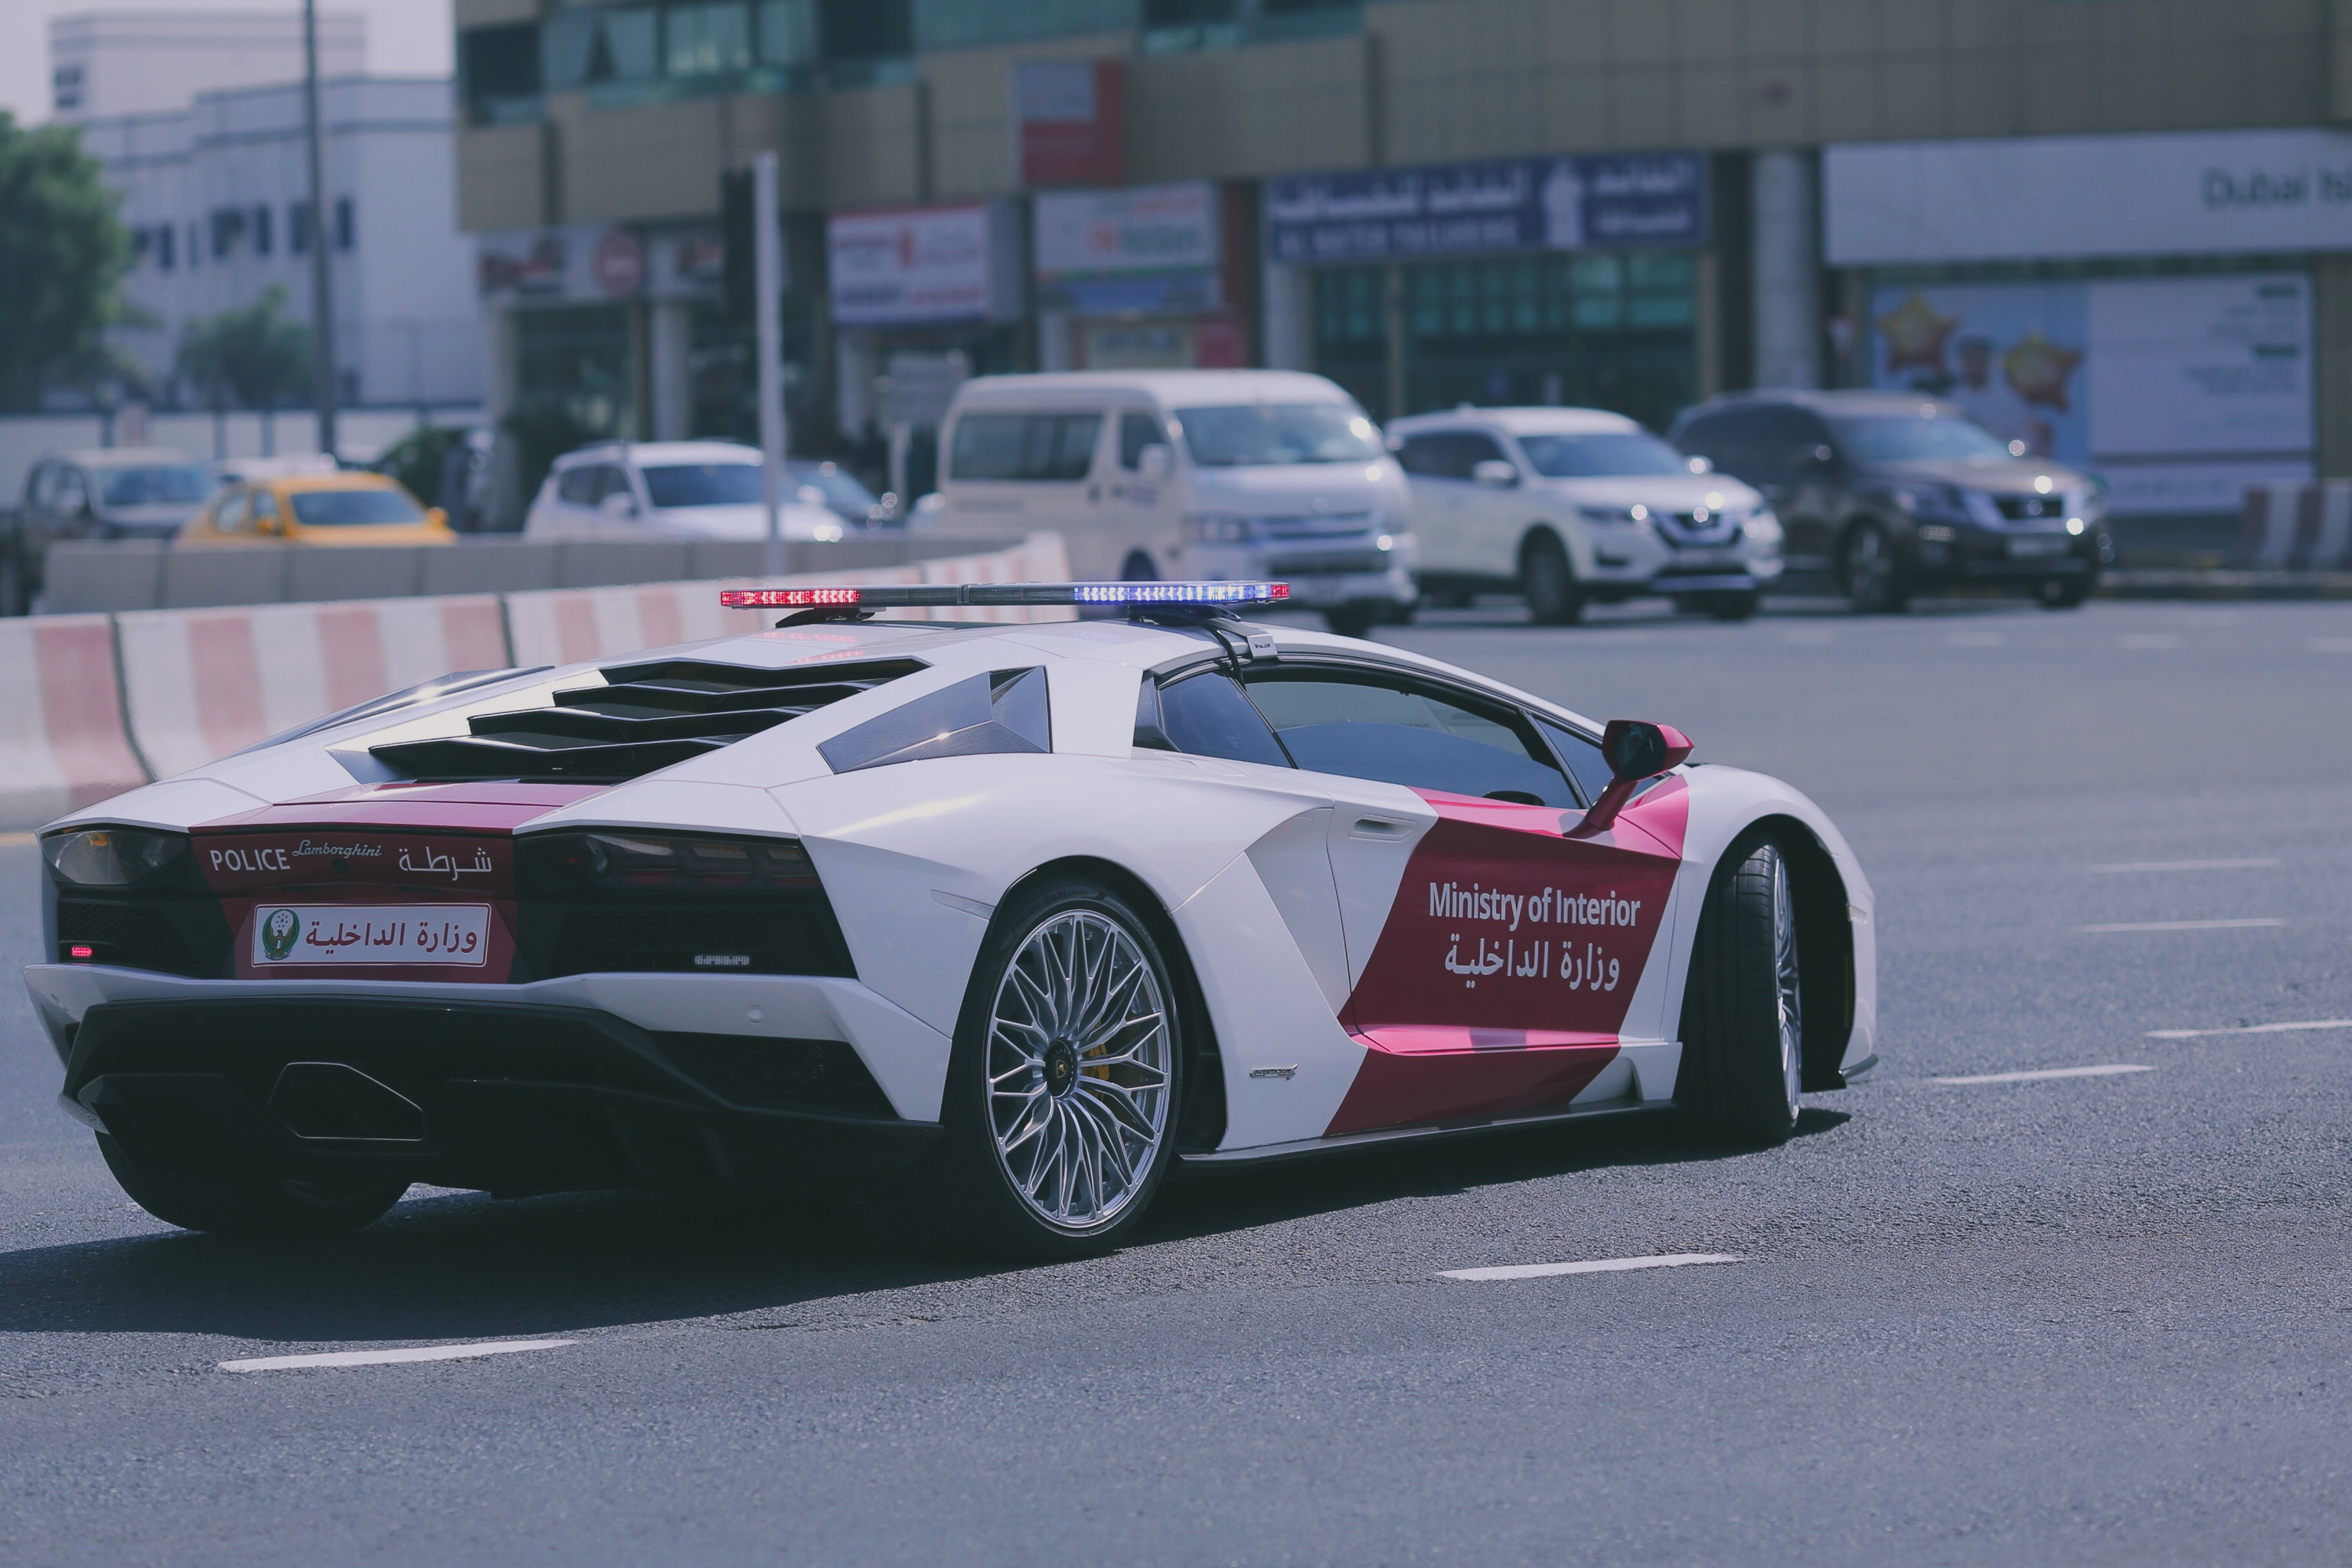 The Ministry of Interior in the UAE Gets a Lamborghini Aventador S ...